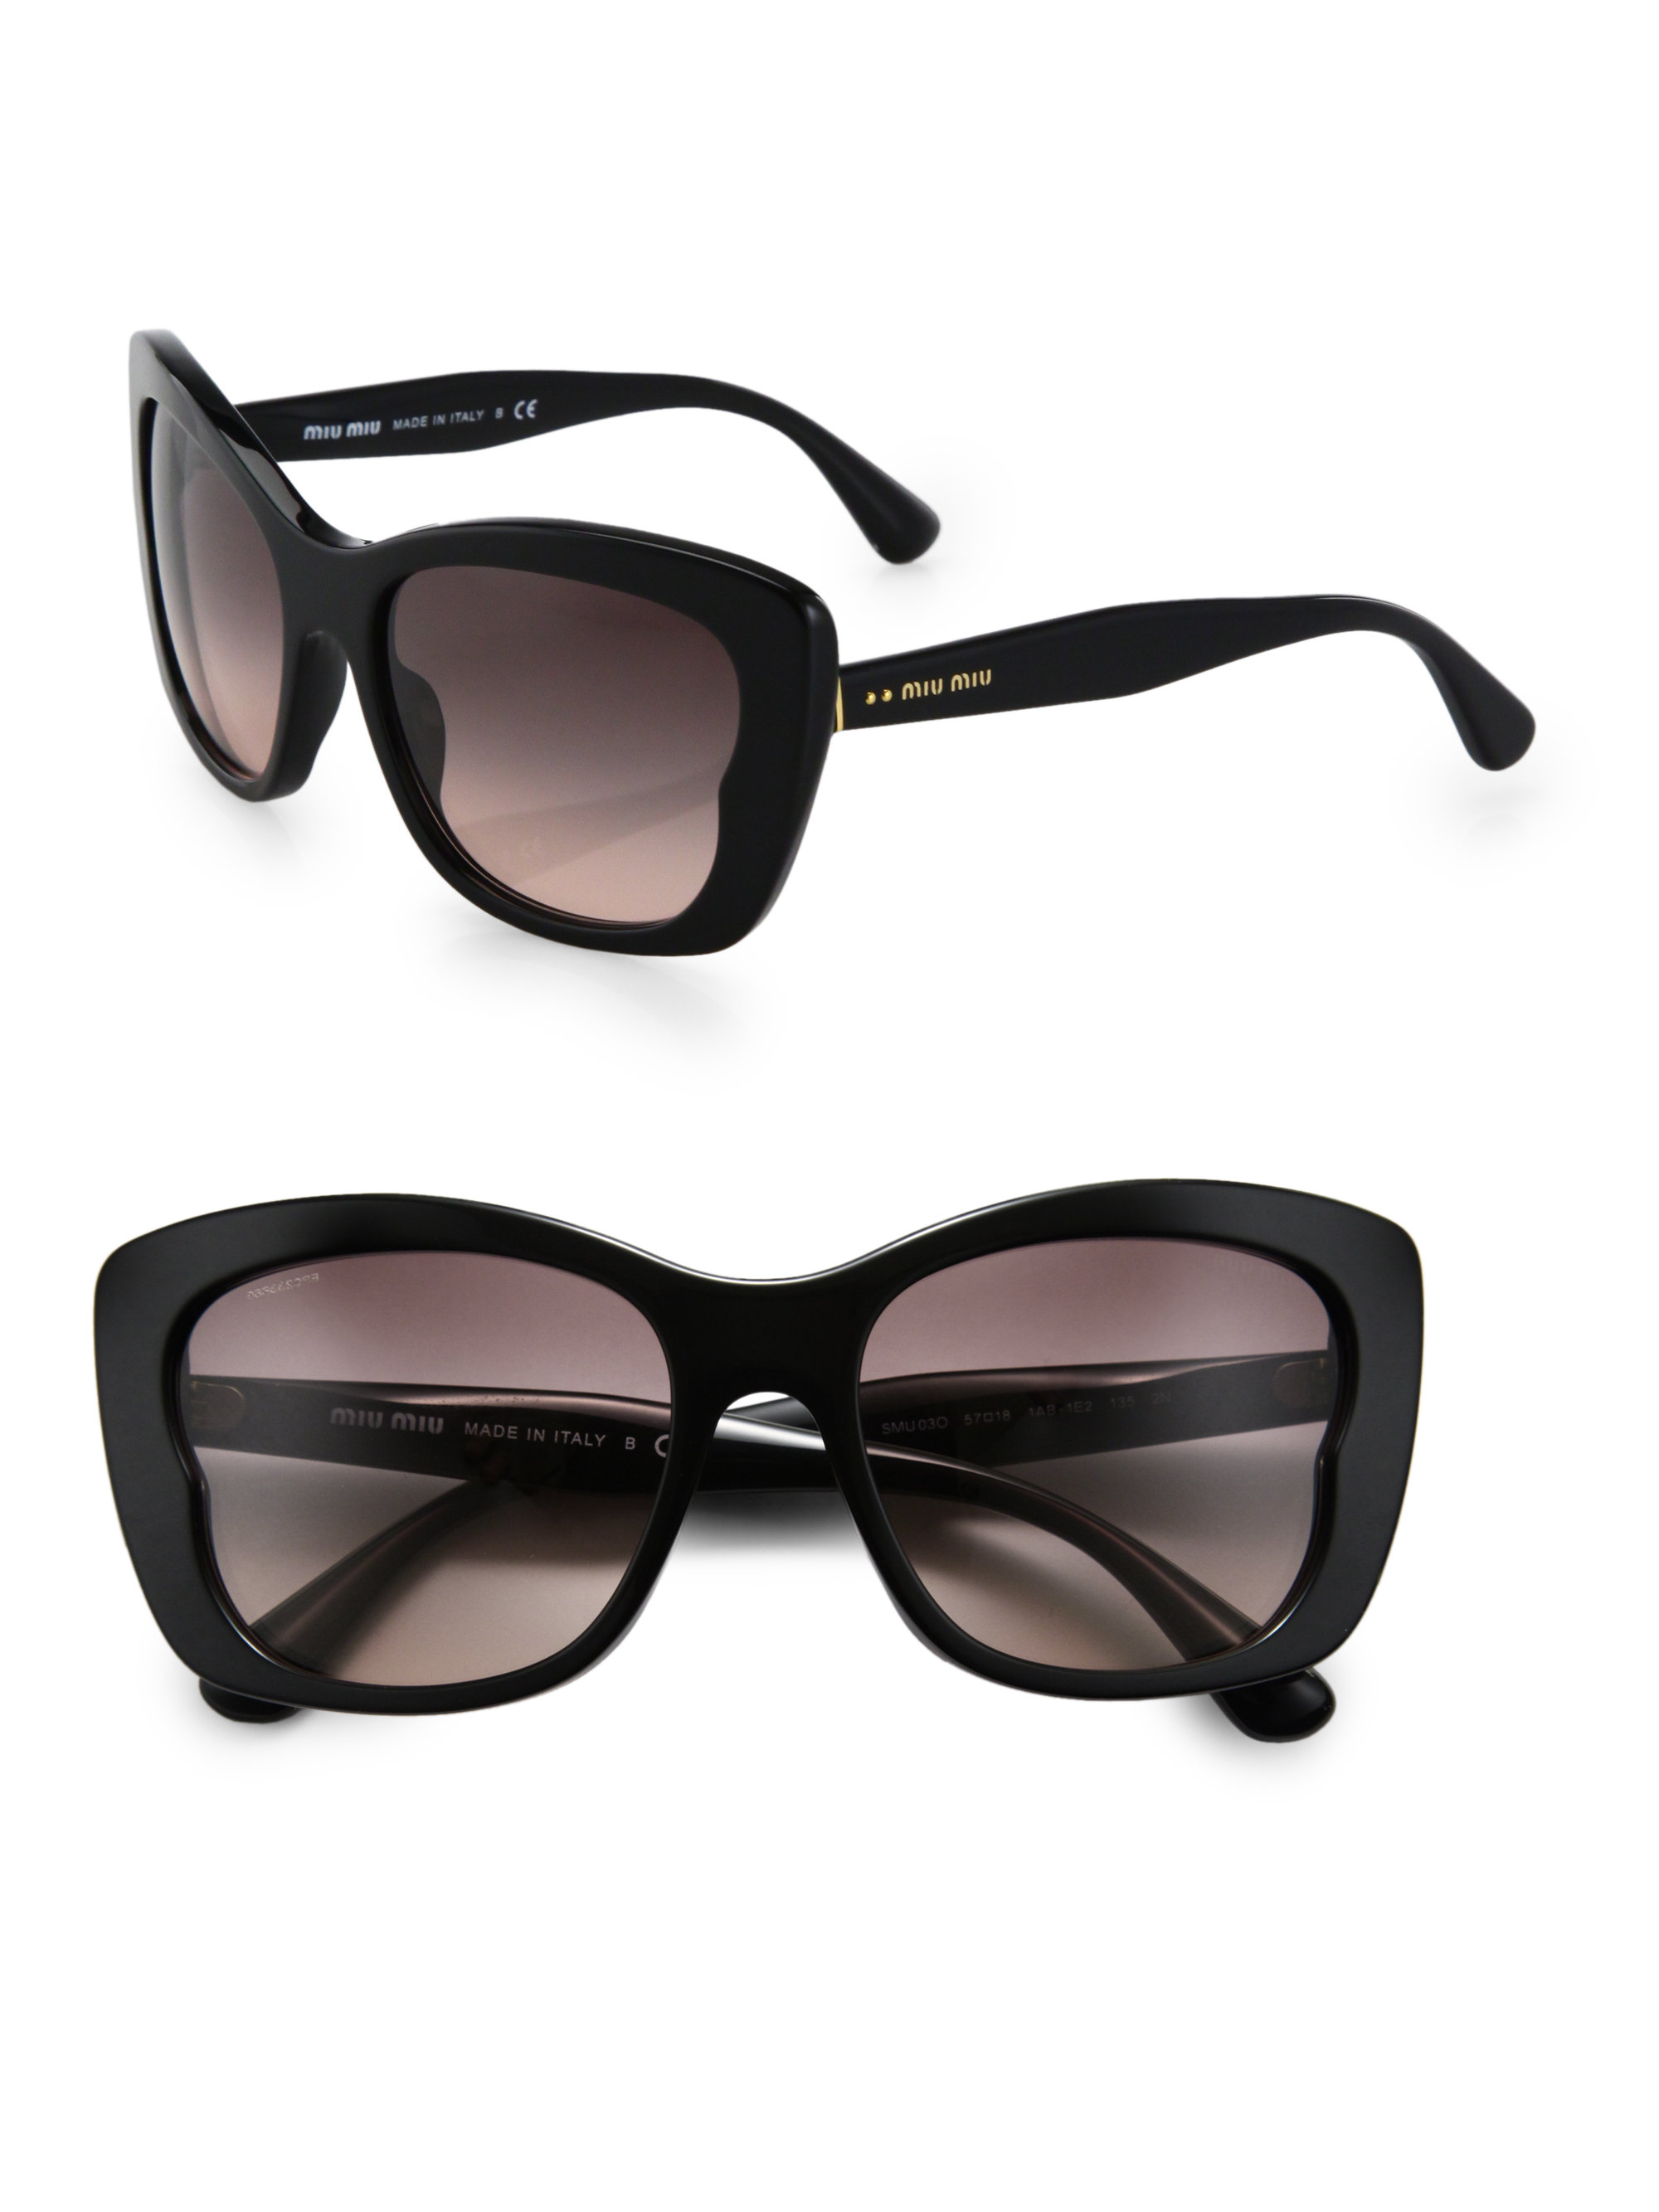 78fa7d3fec7 Lyst - Miu Miu Oversized Acetate Butterfly Sunglasses in Black